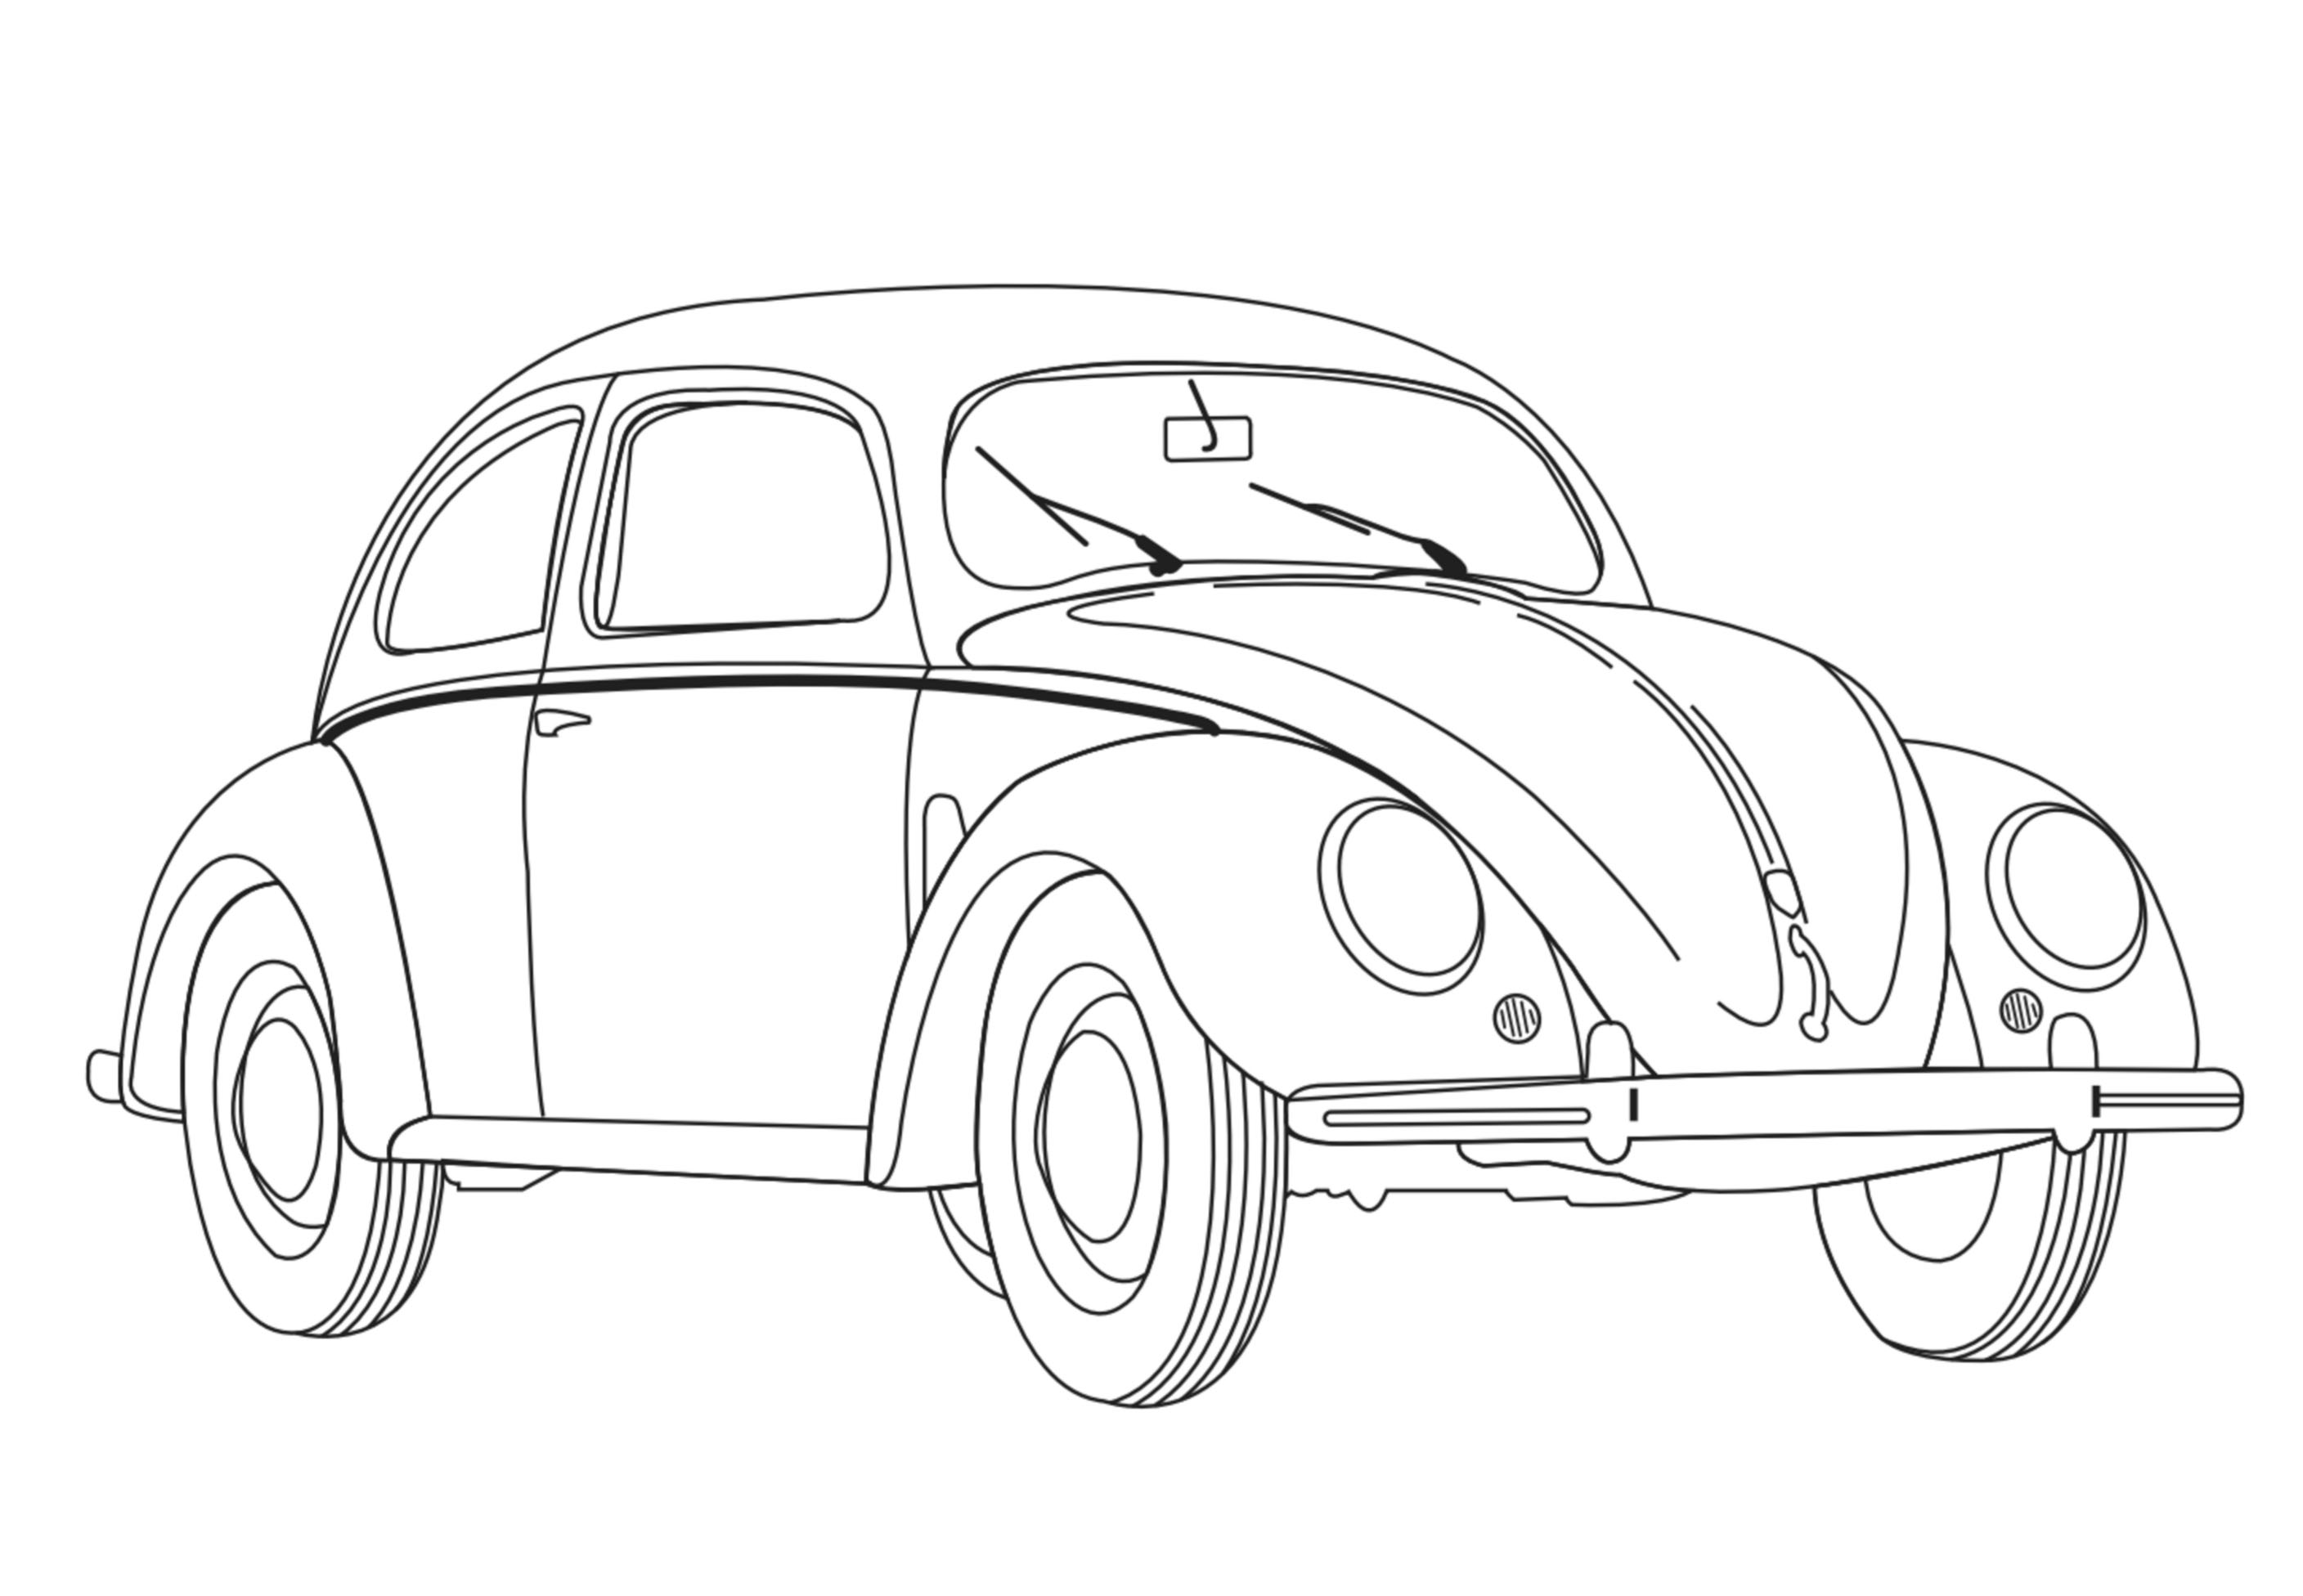 coloring car for kids cars coloring pages for kids printable free coloing coloring for kids car